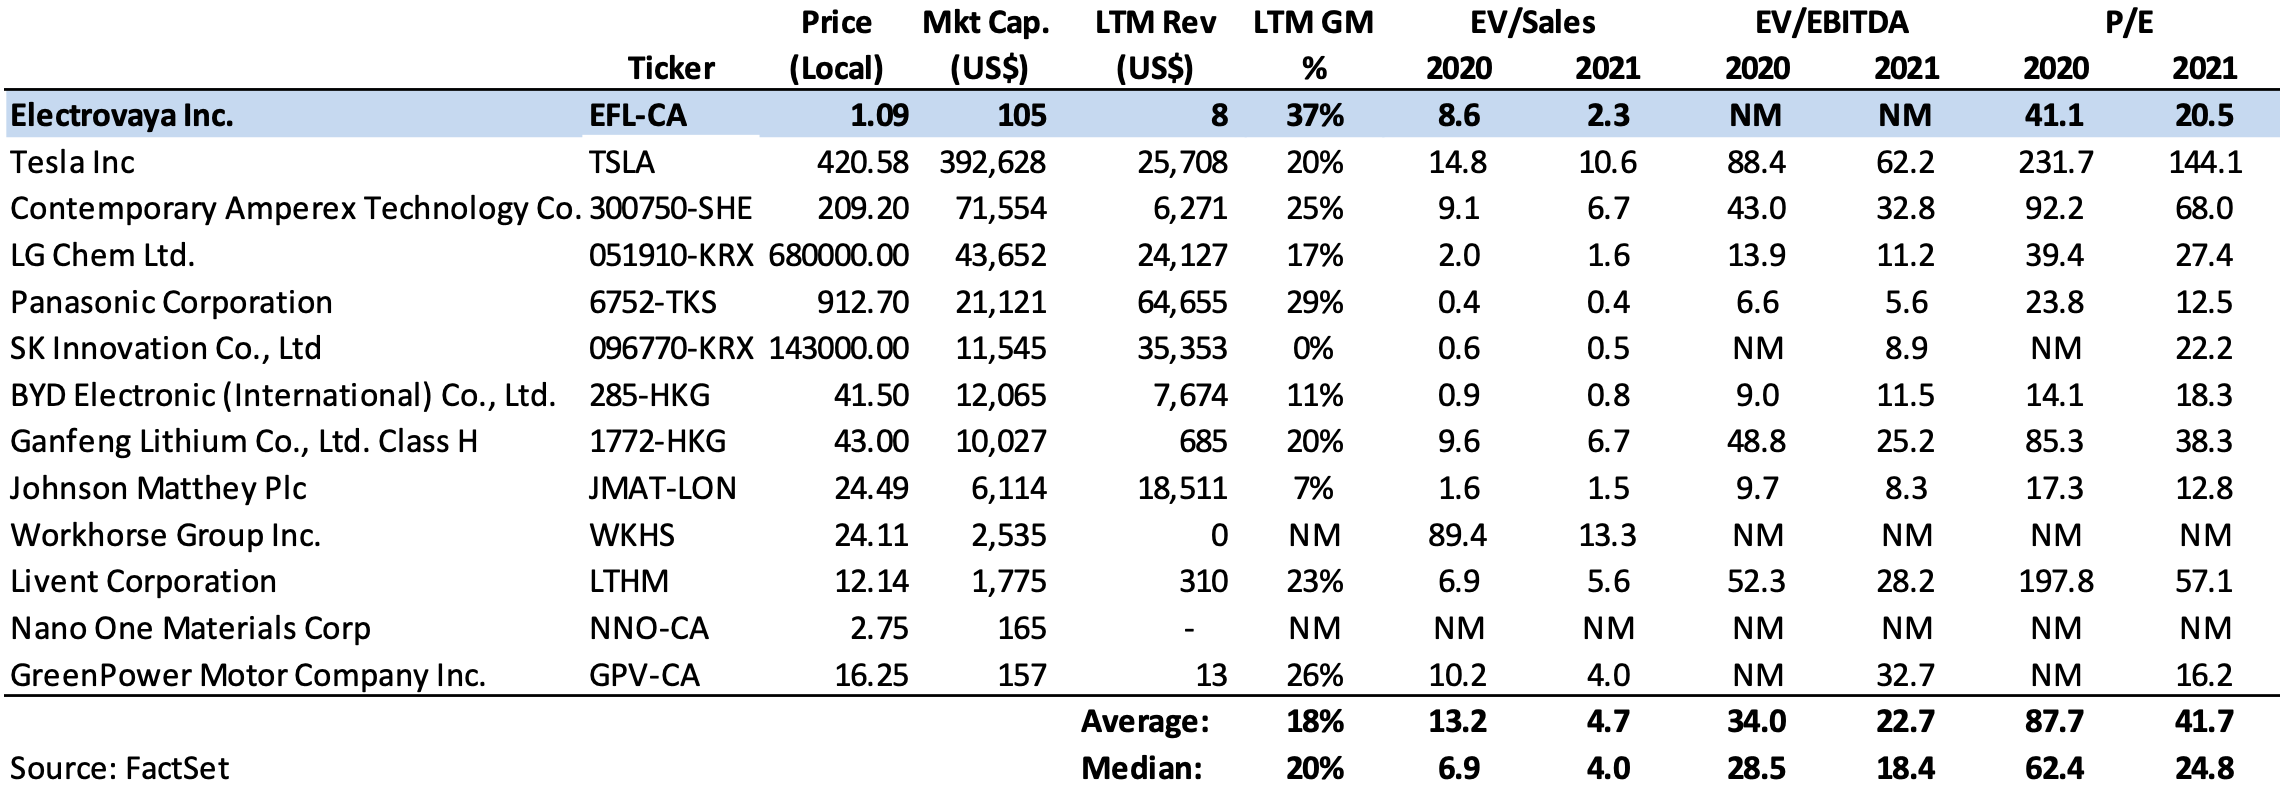 Valuation Comparables